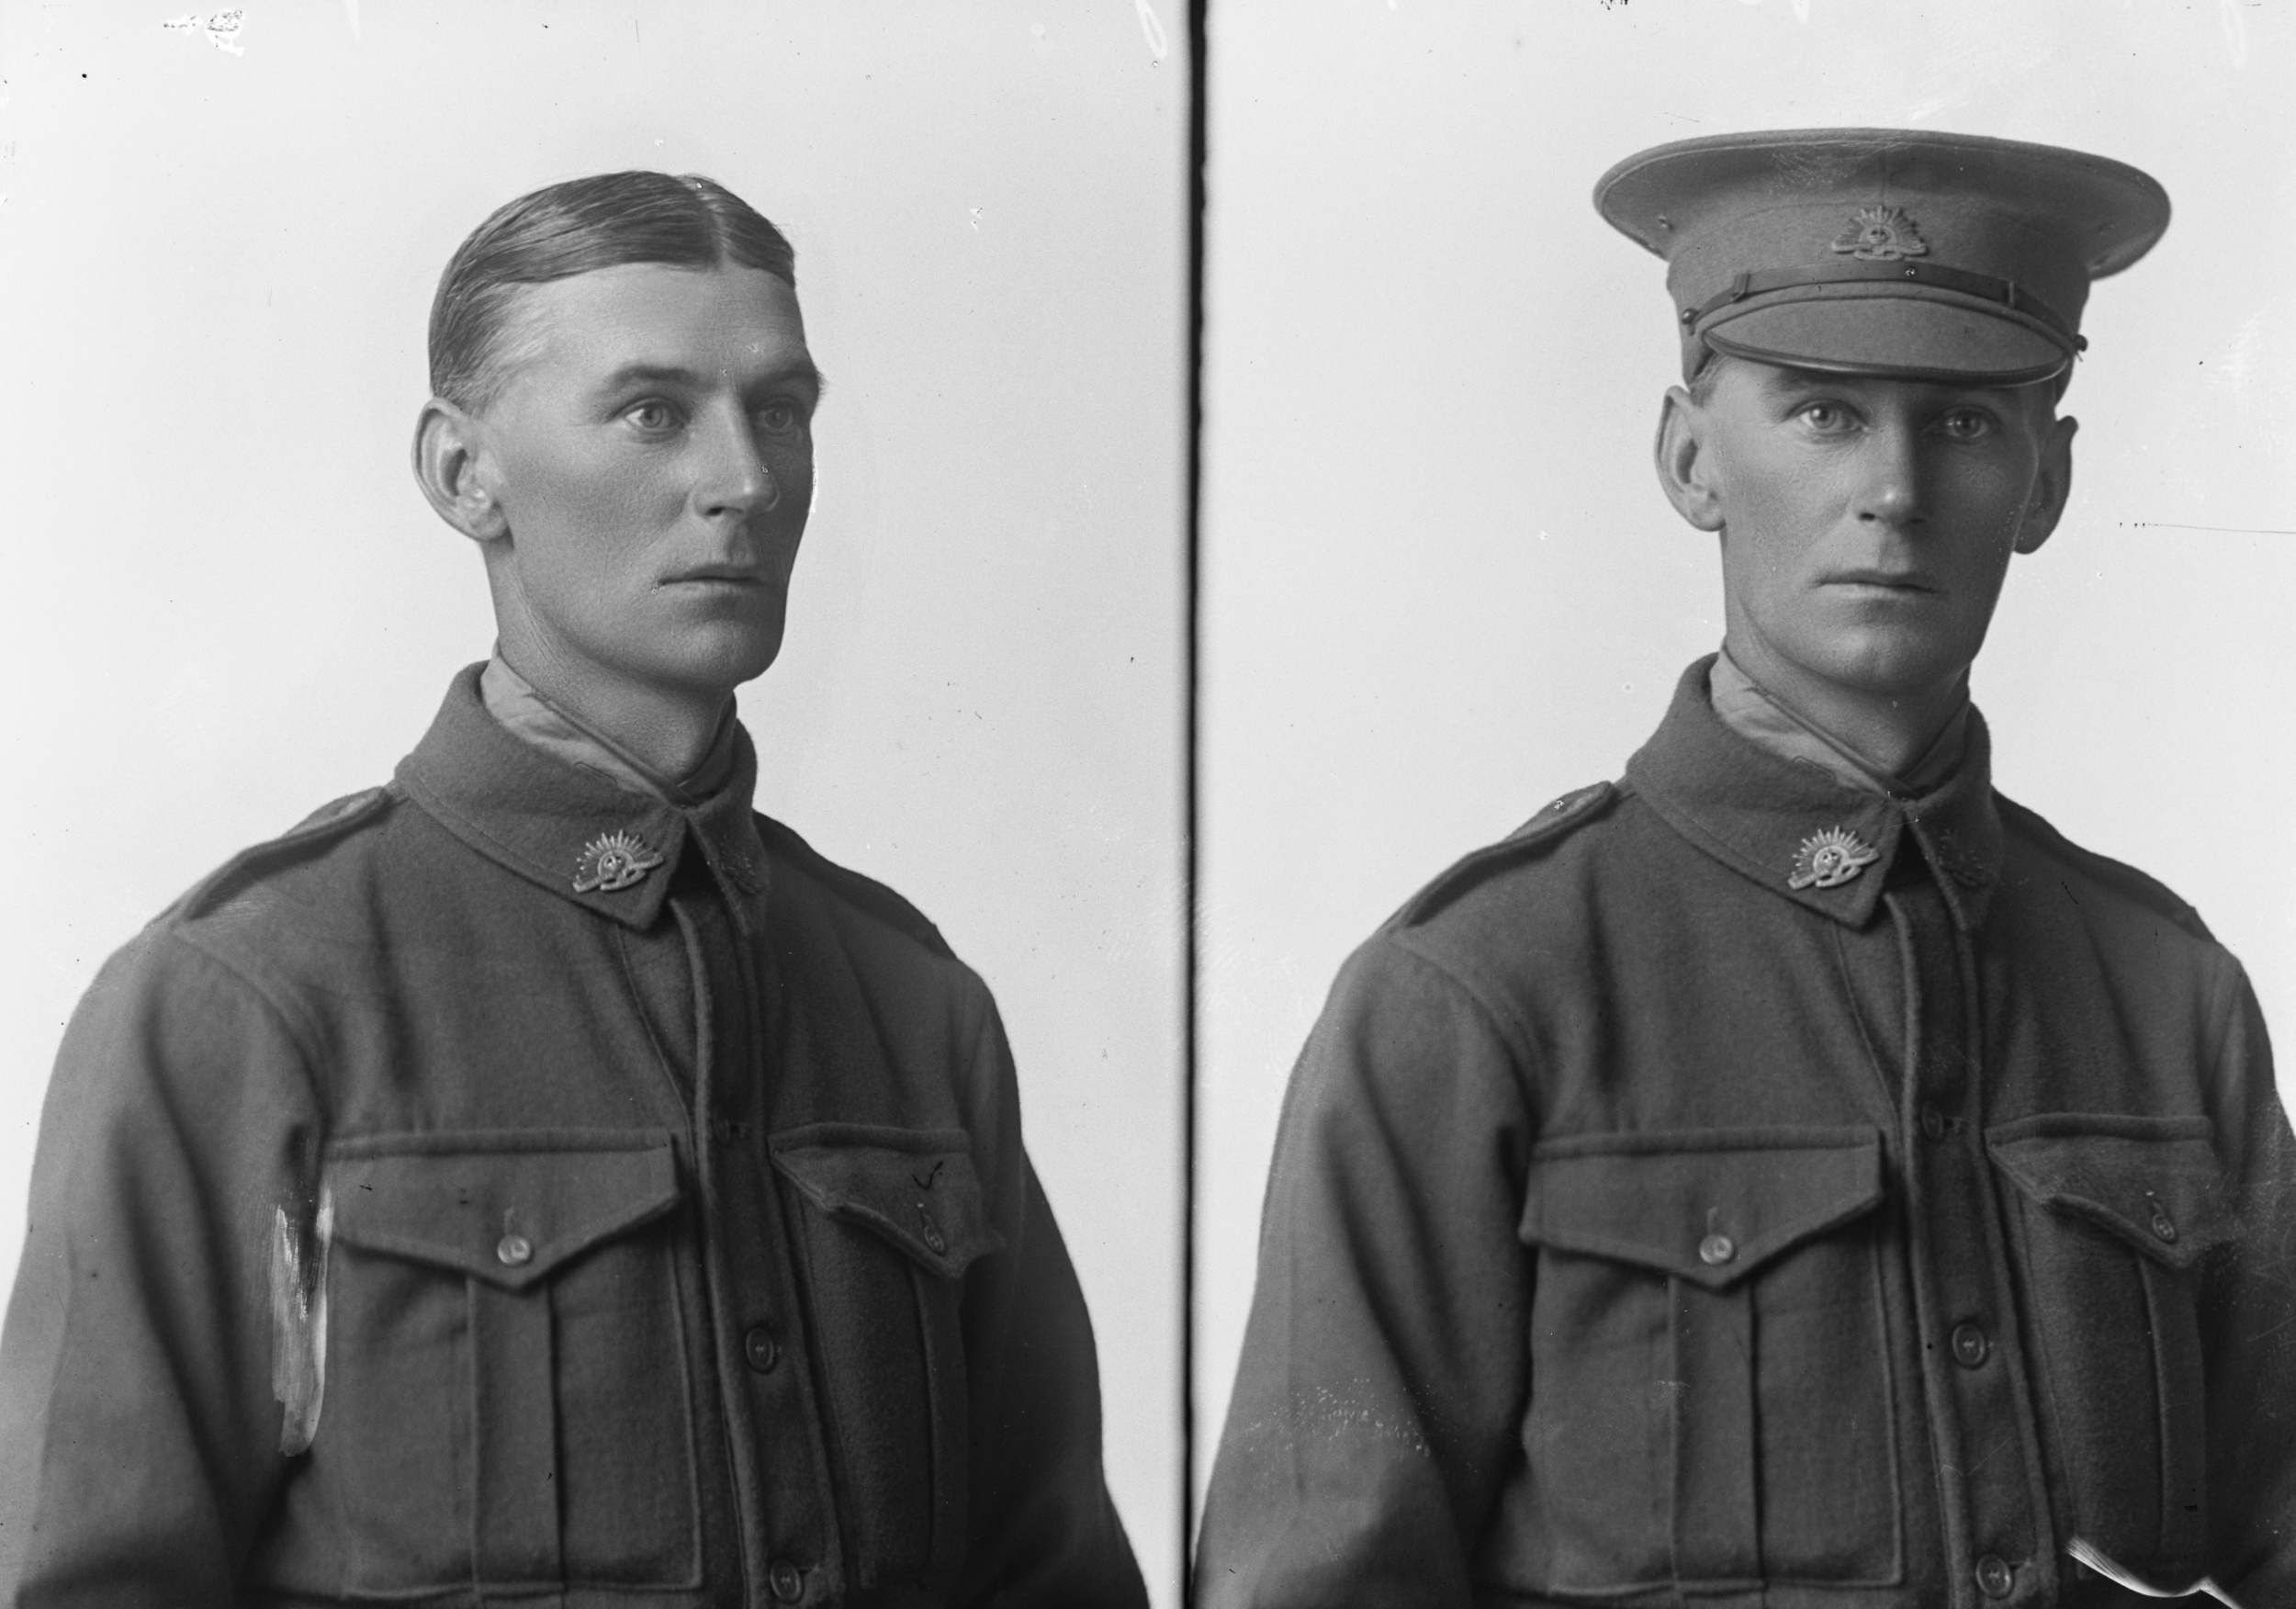 Photographed at the Dease Studio, 117 Barrack Street Perth WA Image courtesy of the State Library of Western Australia: 108371PD